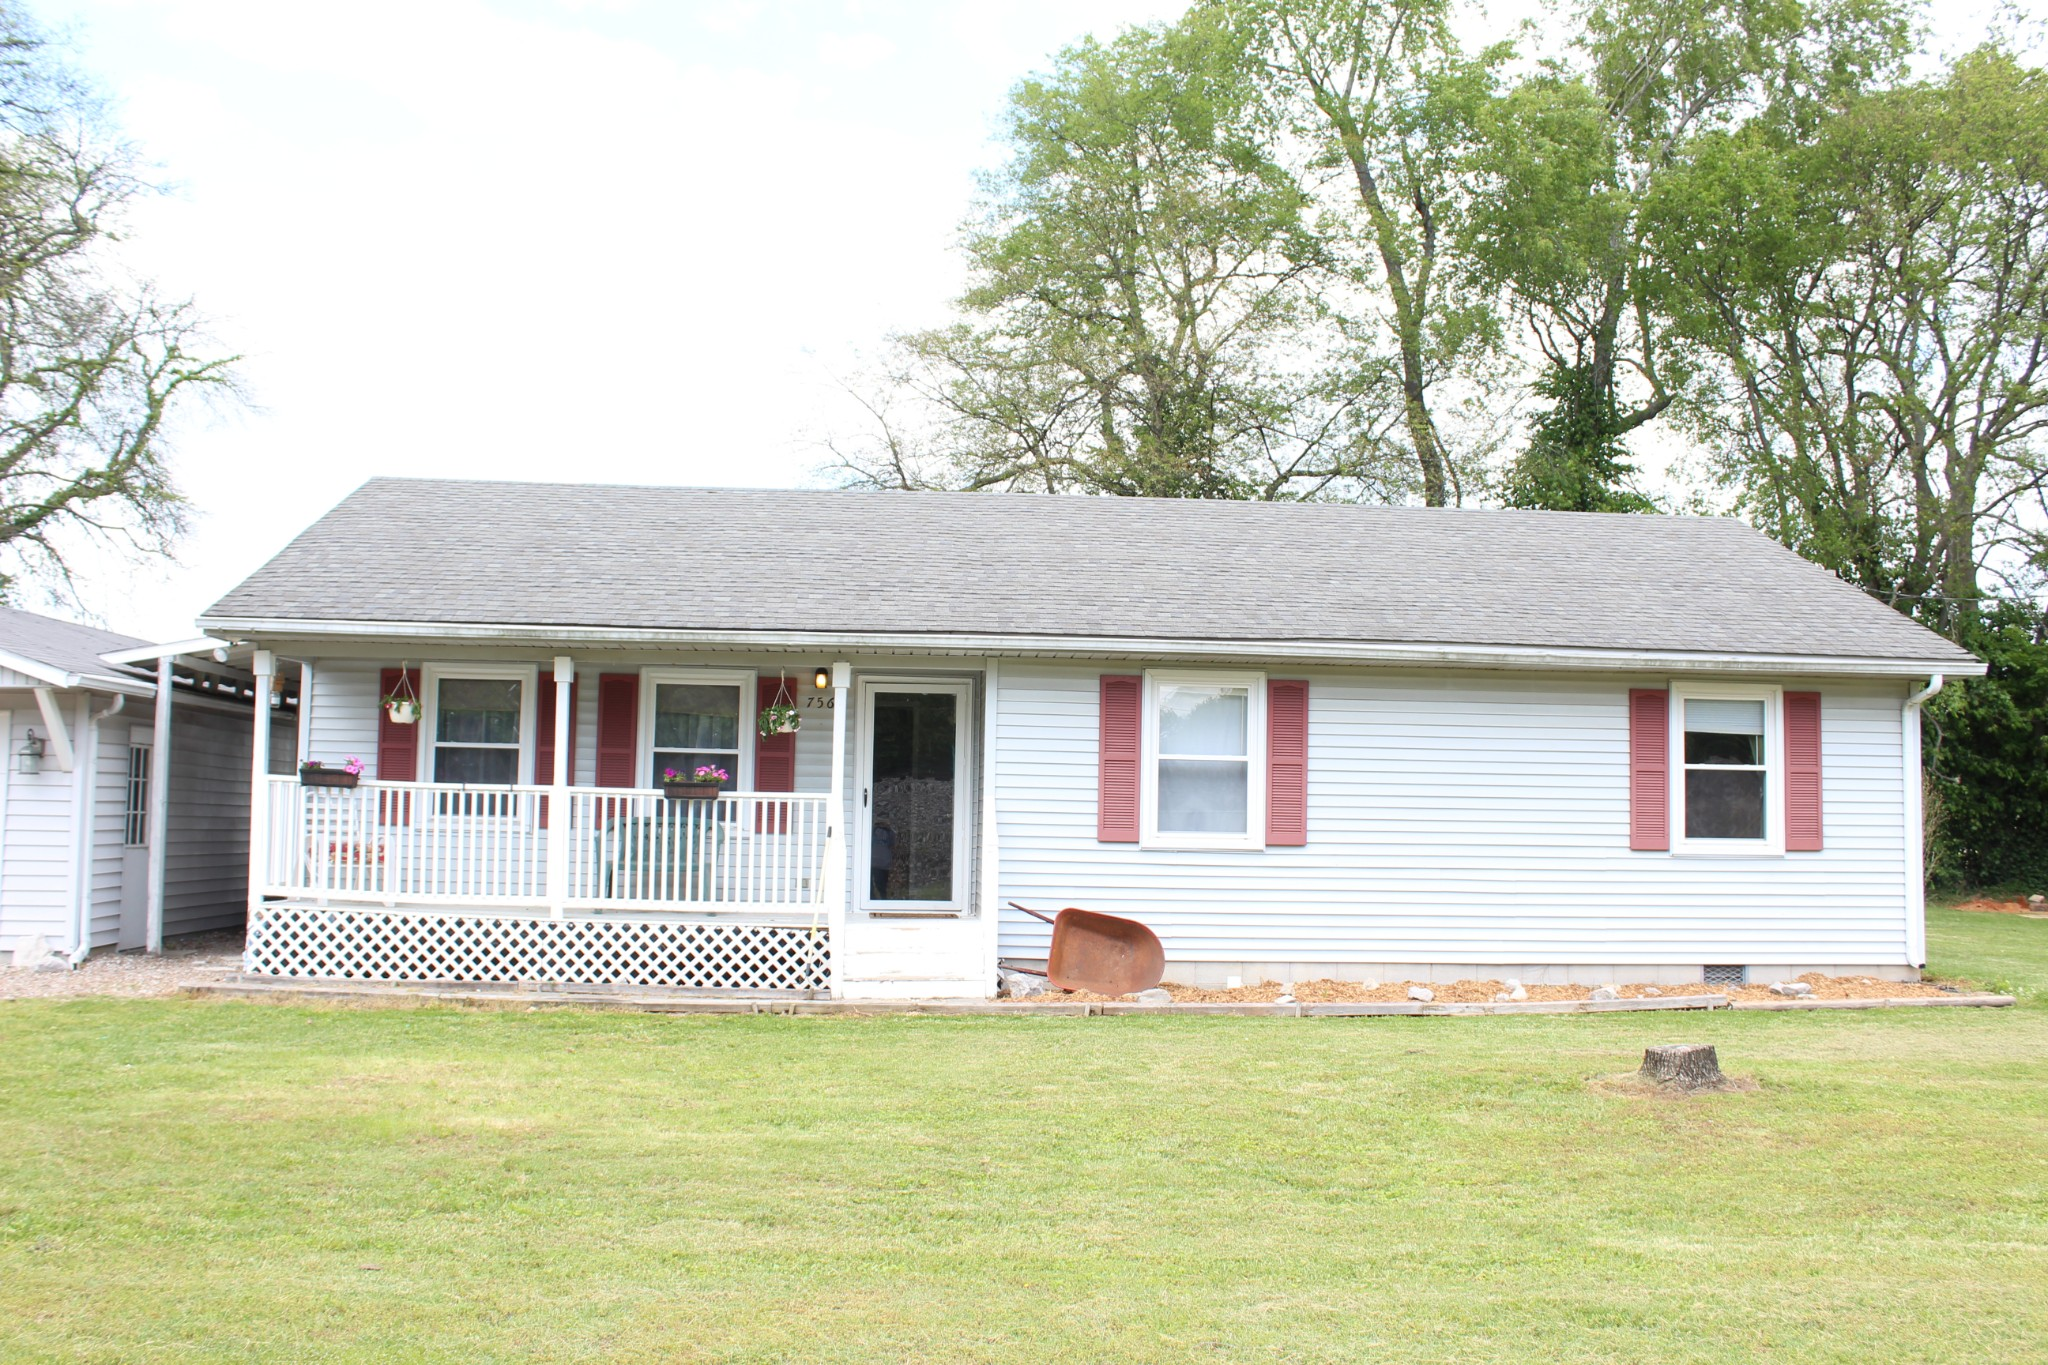 756 Maple St Property Photo - Auburn, KY real estate listing